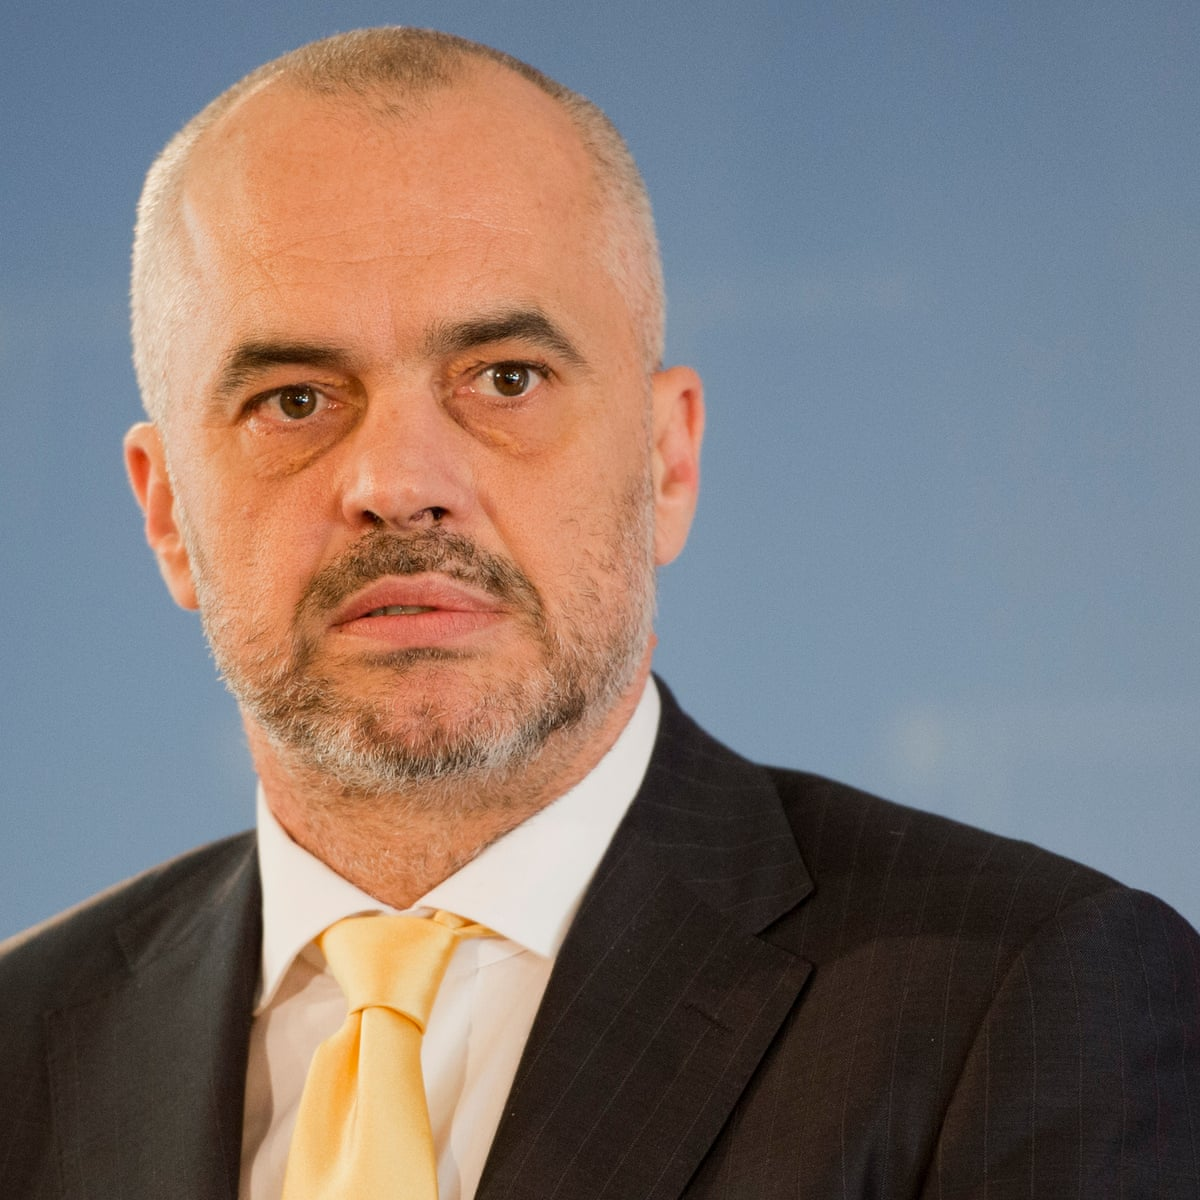 Edi Rama, Albania's unconventional PM who wants to escape the 'curse of  history' | Albania | The Guardian